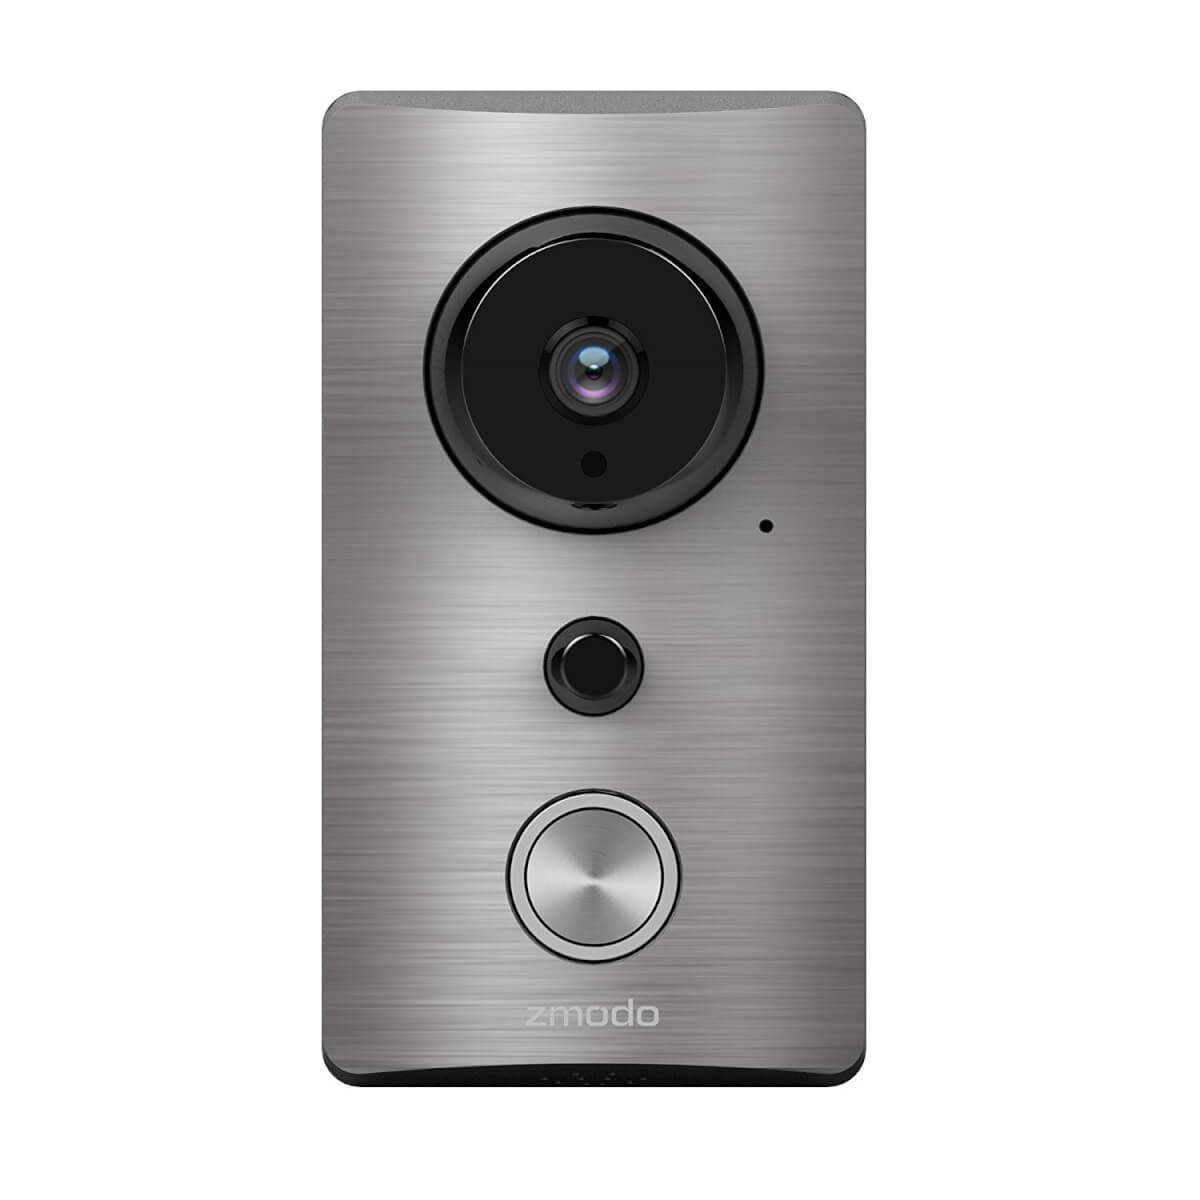 ... to answer the door or on a family vacation (not that we suggest including that detail in your message!) so weu0027d give this category to Zmodo Greet.  sc 1 st  Smart Home Solver & Zmodo vs Ring Comparison - Finding a Smarter Doorbell